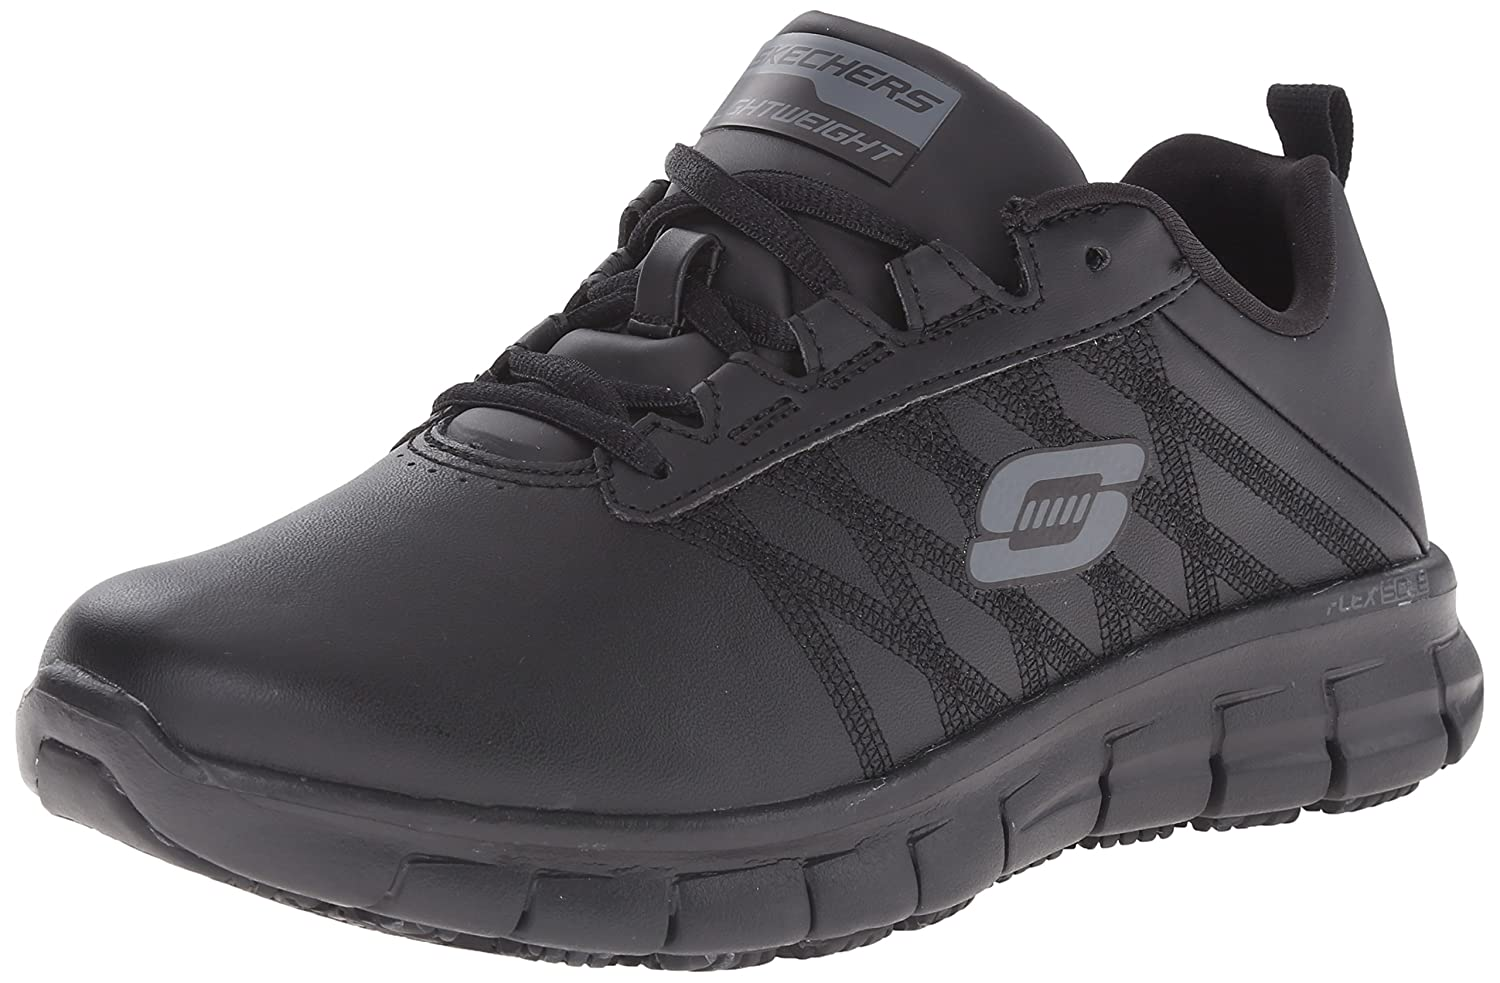 Skechers for Work Women's Sure Track Erath Athletic Lace Slip Resistant Boot B01AWUUGRY 6.5 C/D US|Black